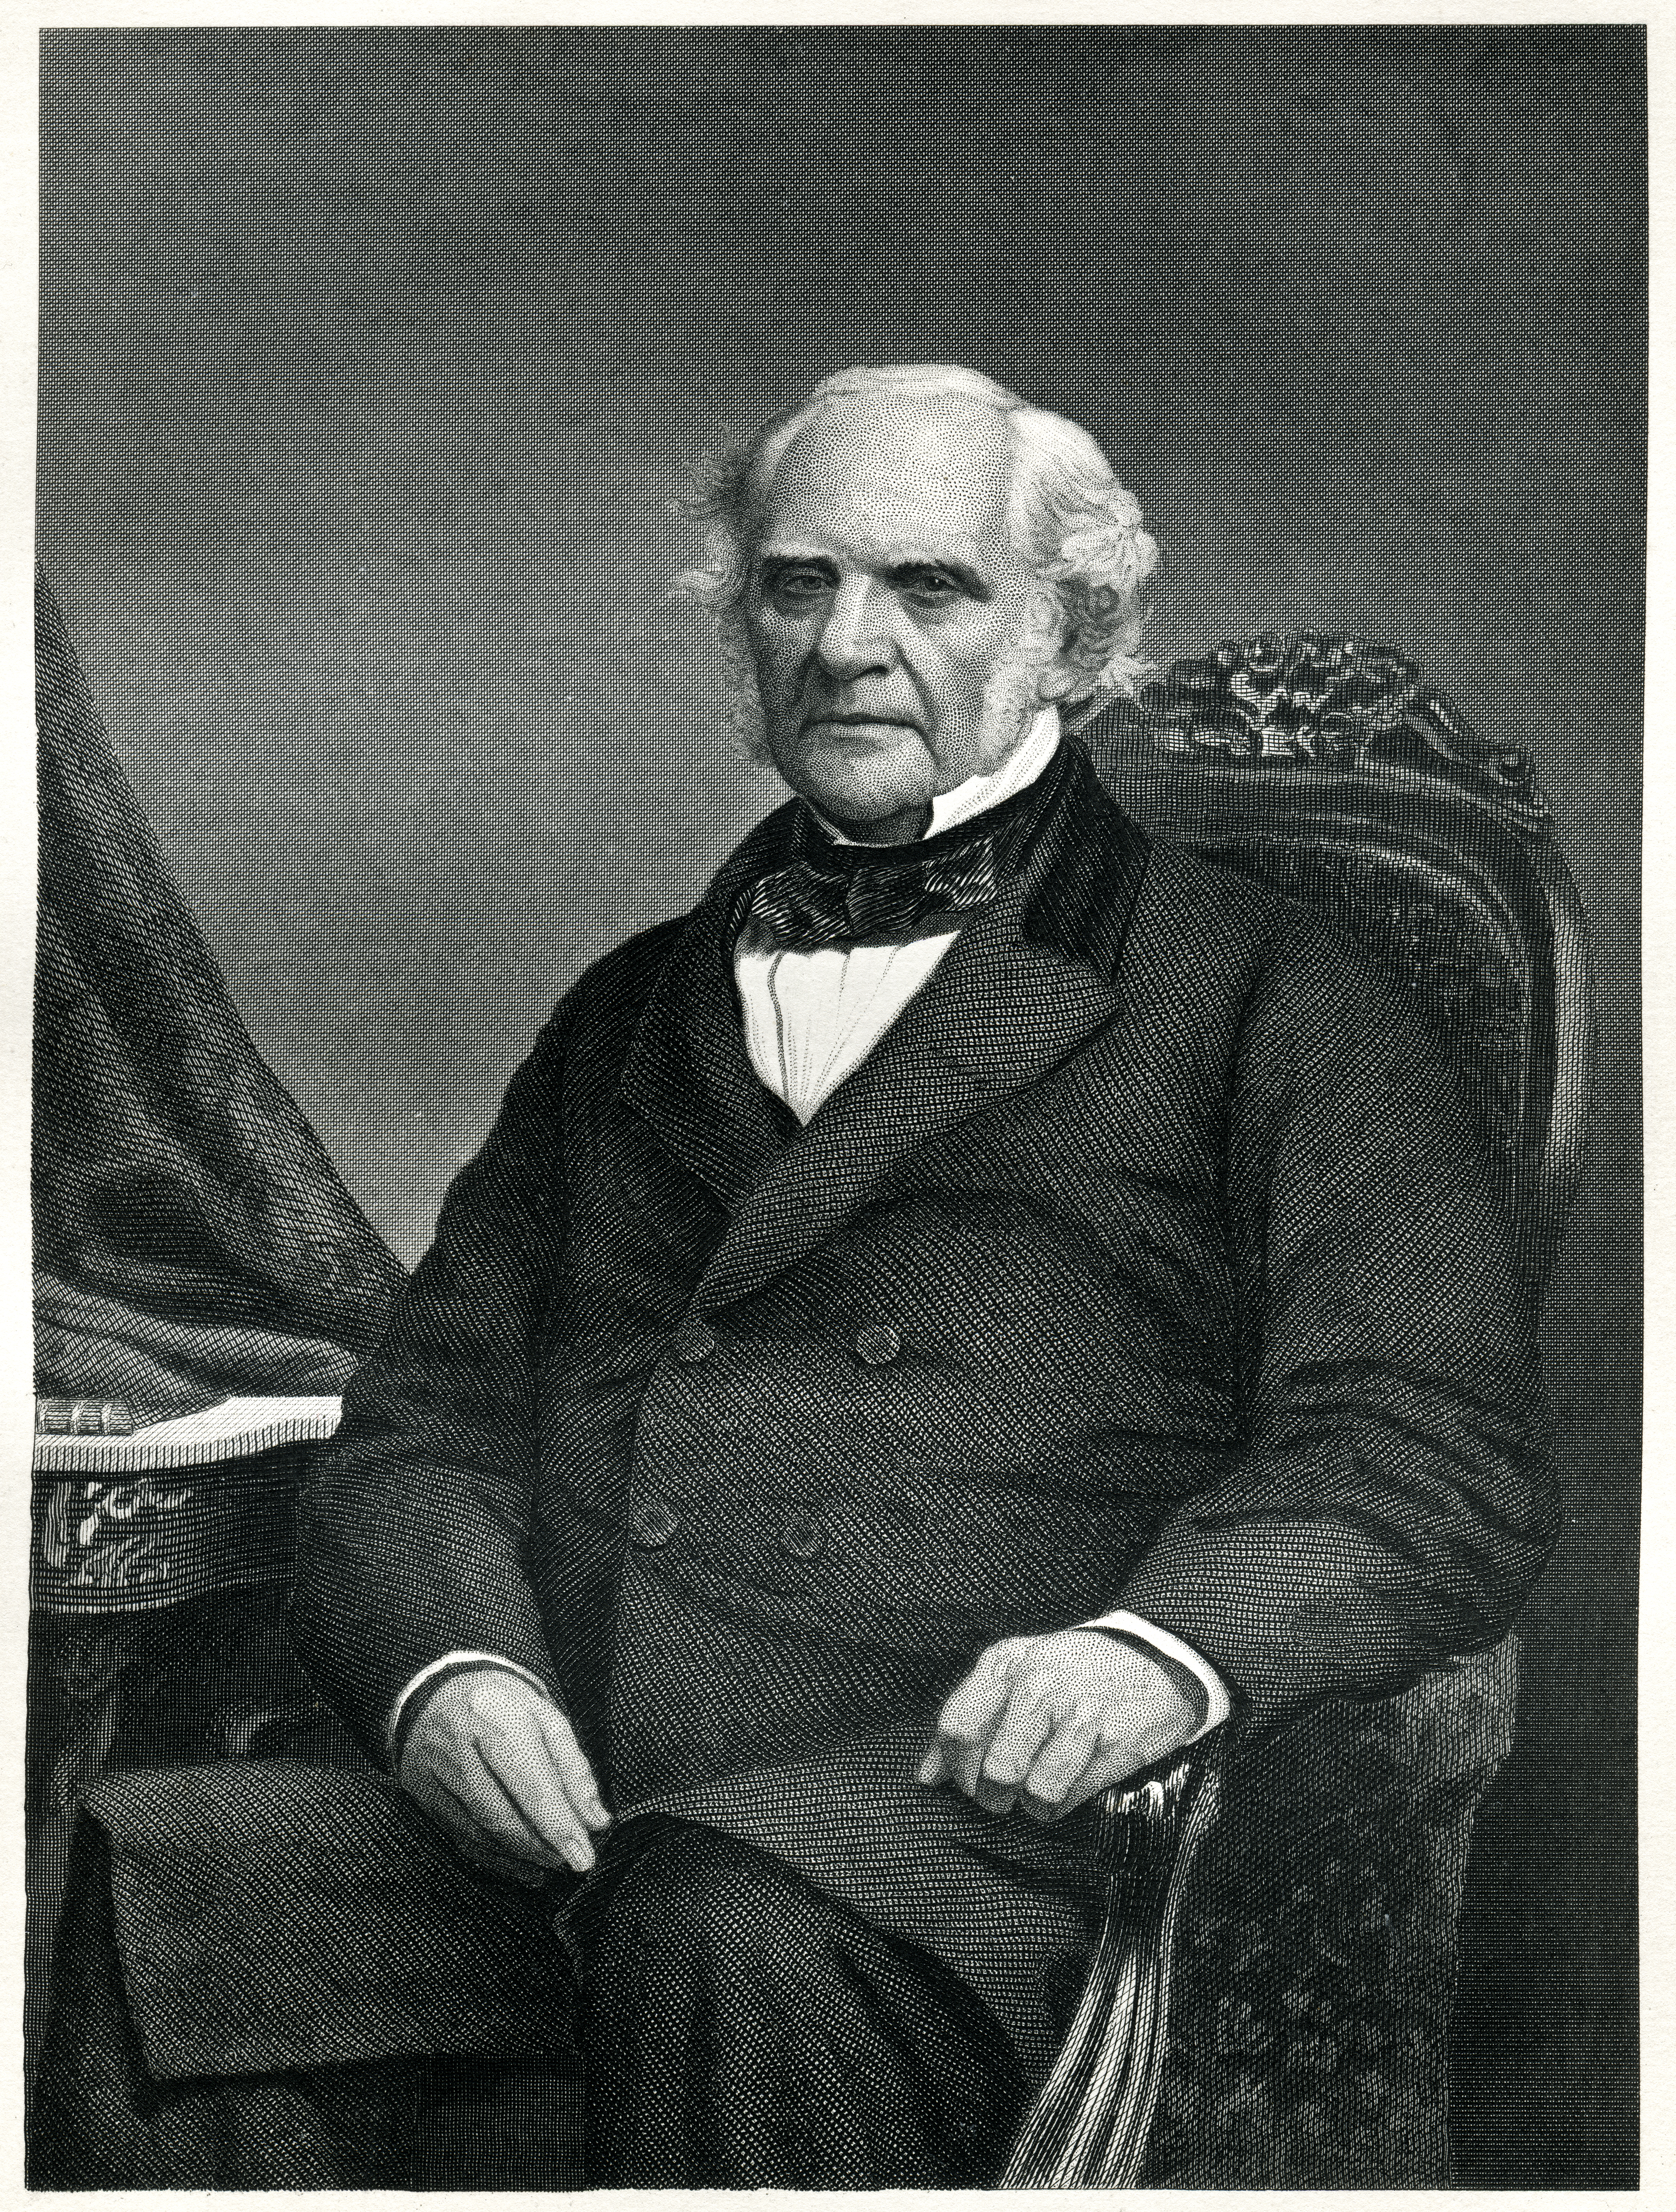 Engraving From 1873 Featuring The American Businessman And Philanthropist, George Peabody. Peabody Lived From 1795 Until 1869.